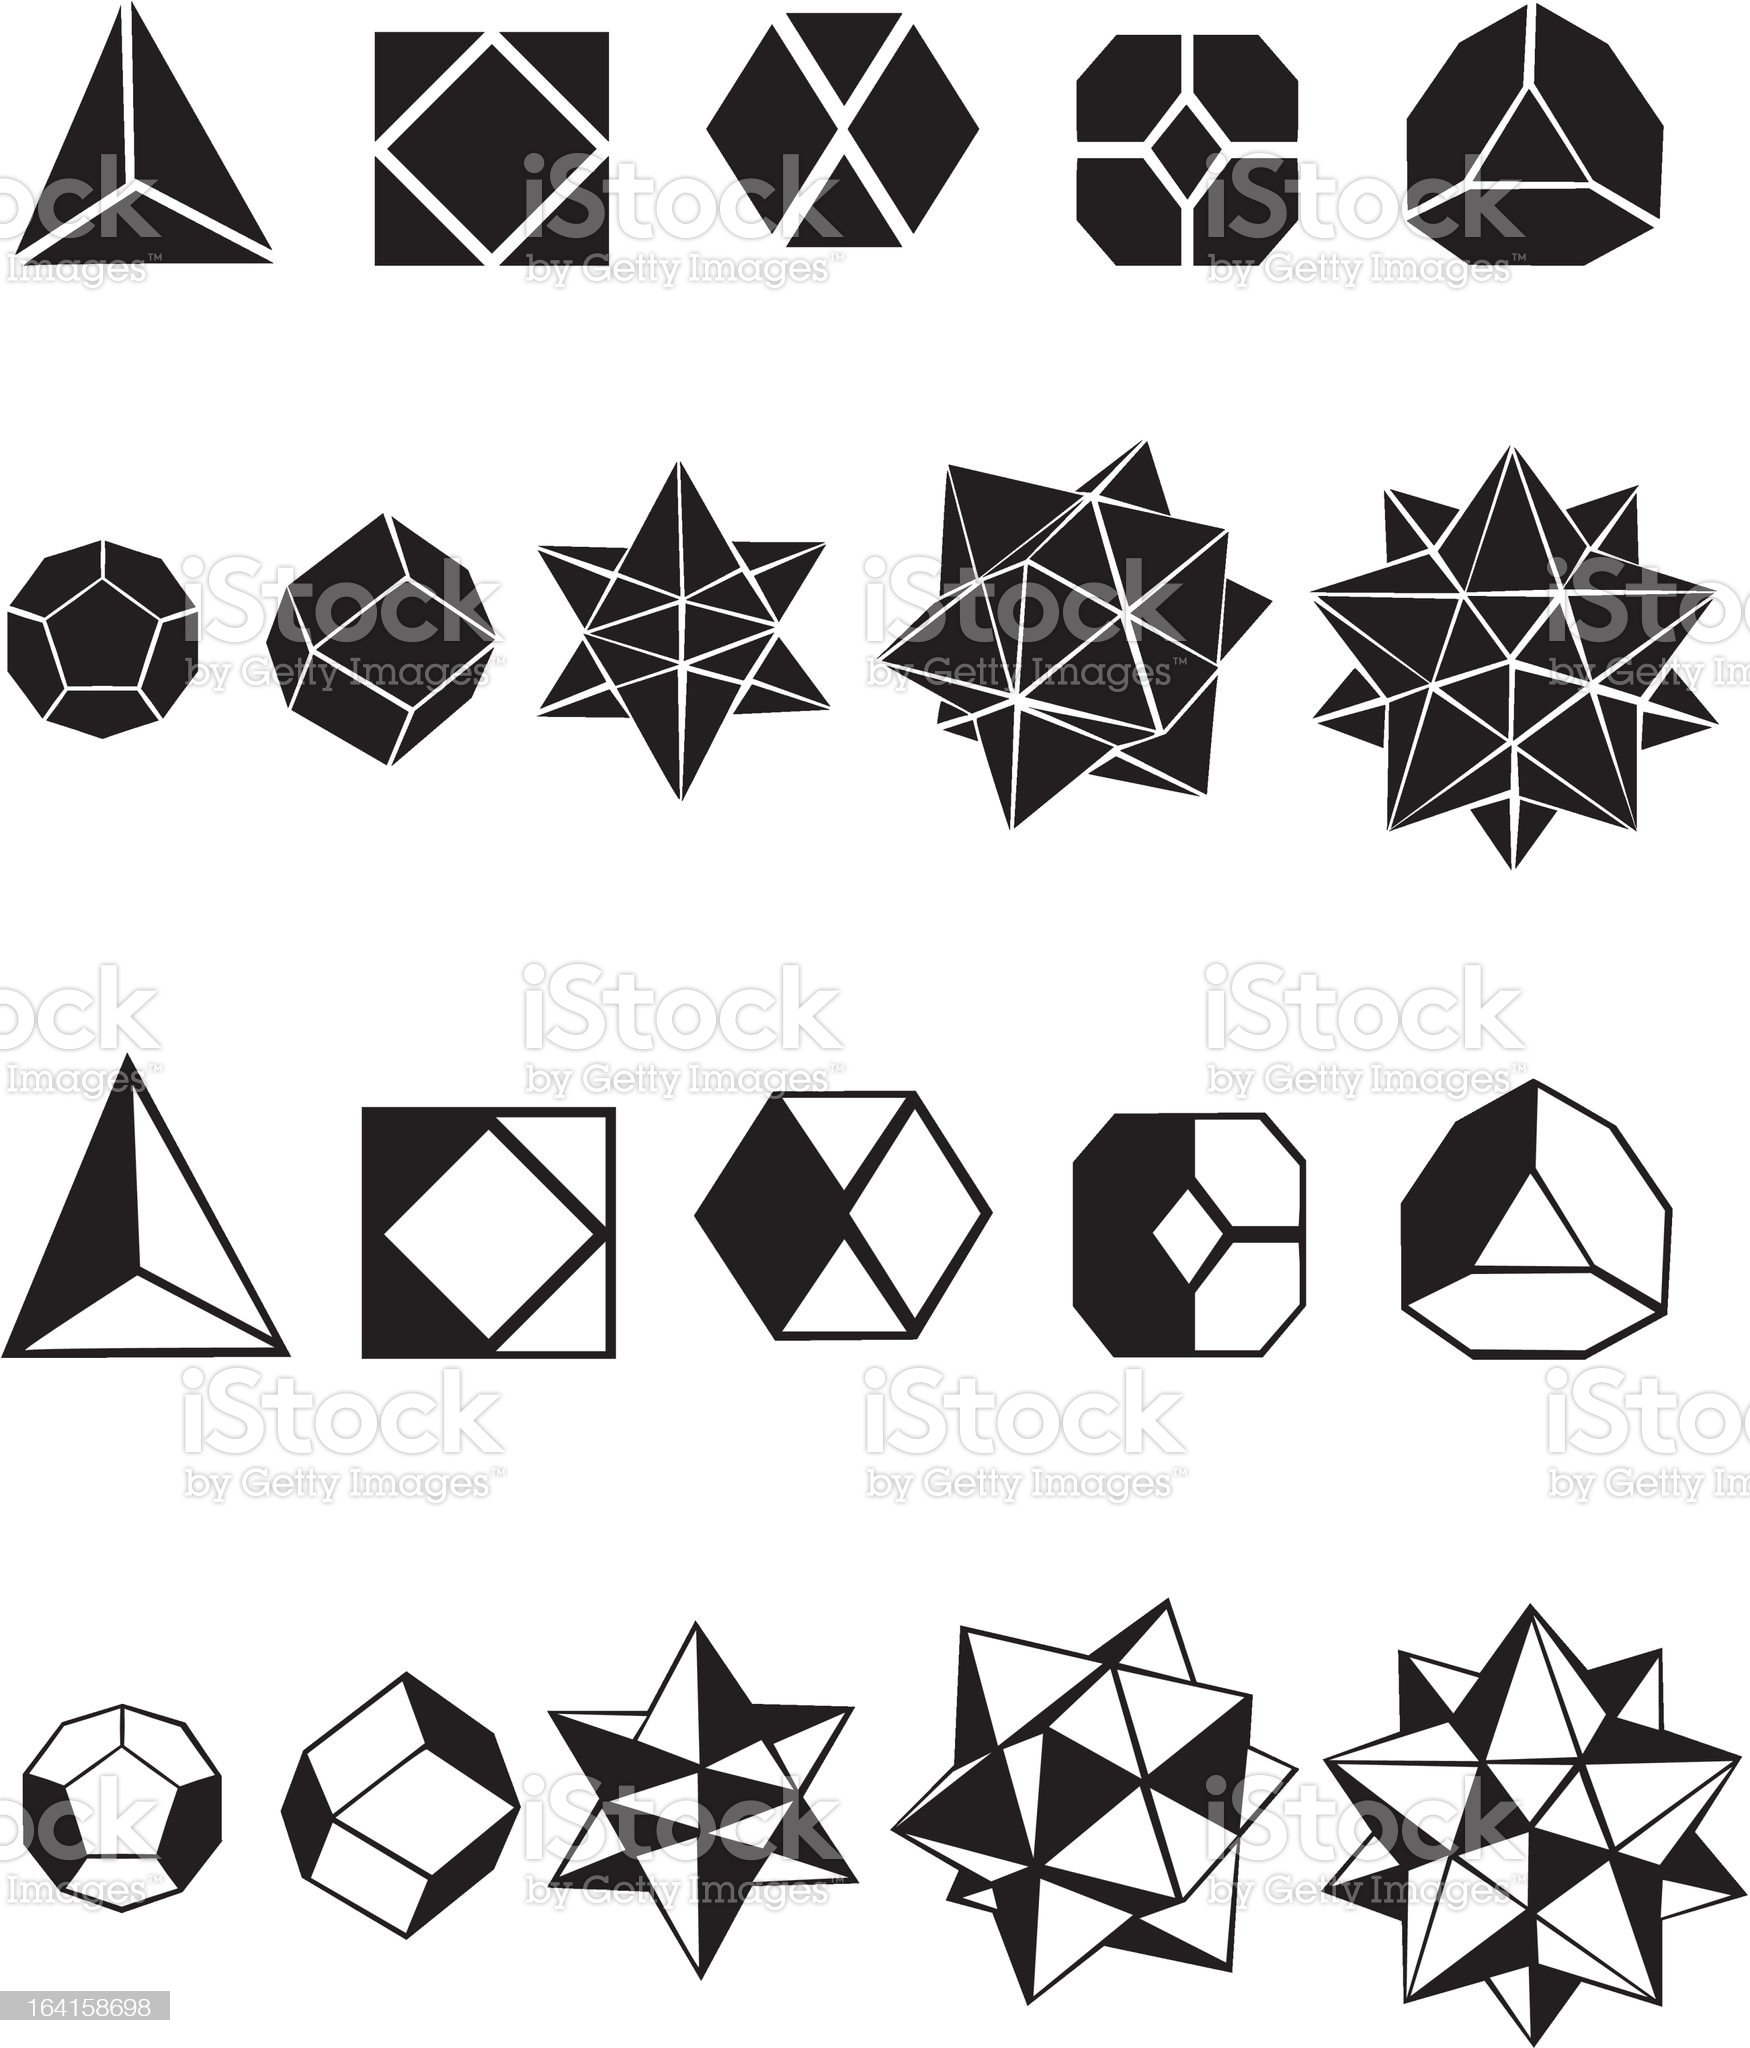 Set of geometric shapes royalty-free stock vector art